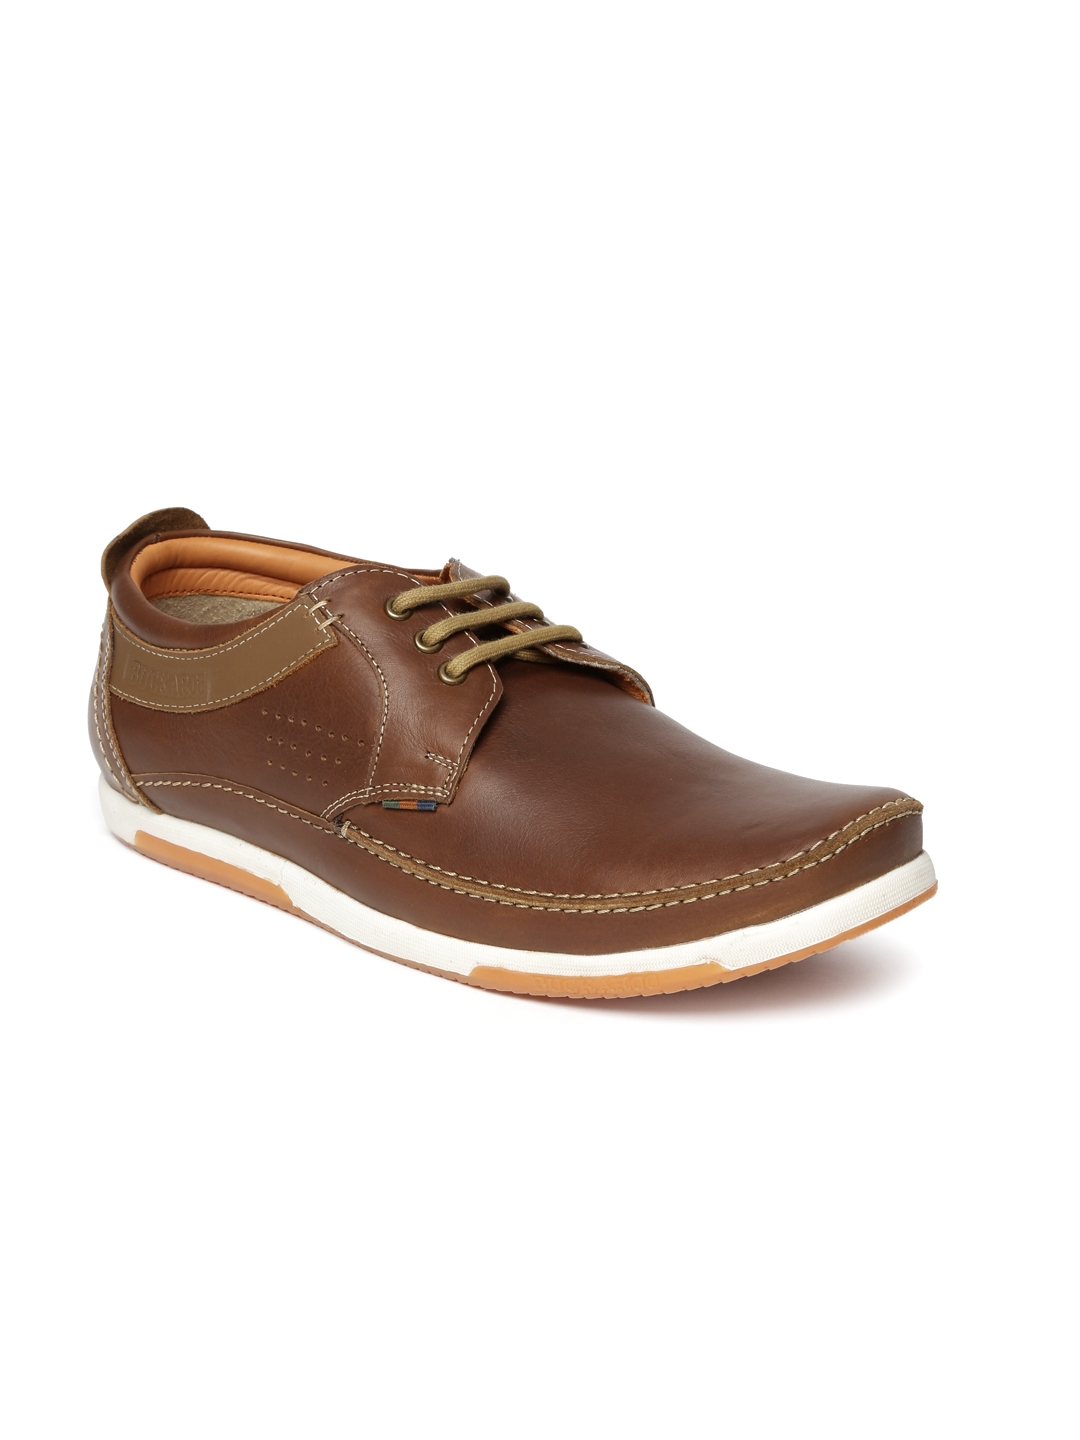 150359367d5 Buy Buckaroo Men Brown Trenton Leather Sneakers - Casual Shoes for ...